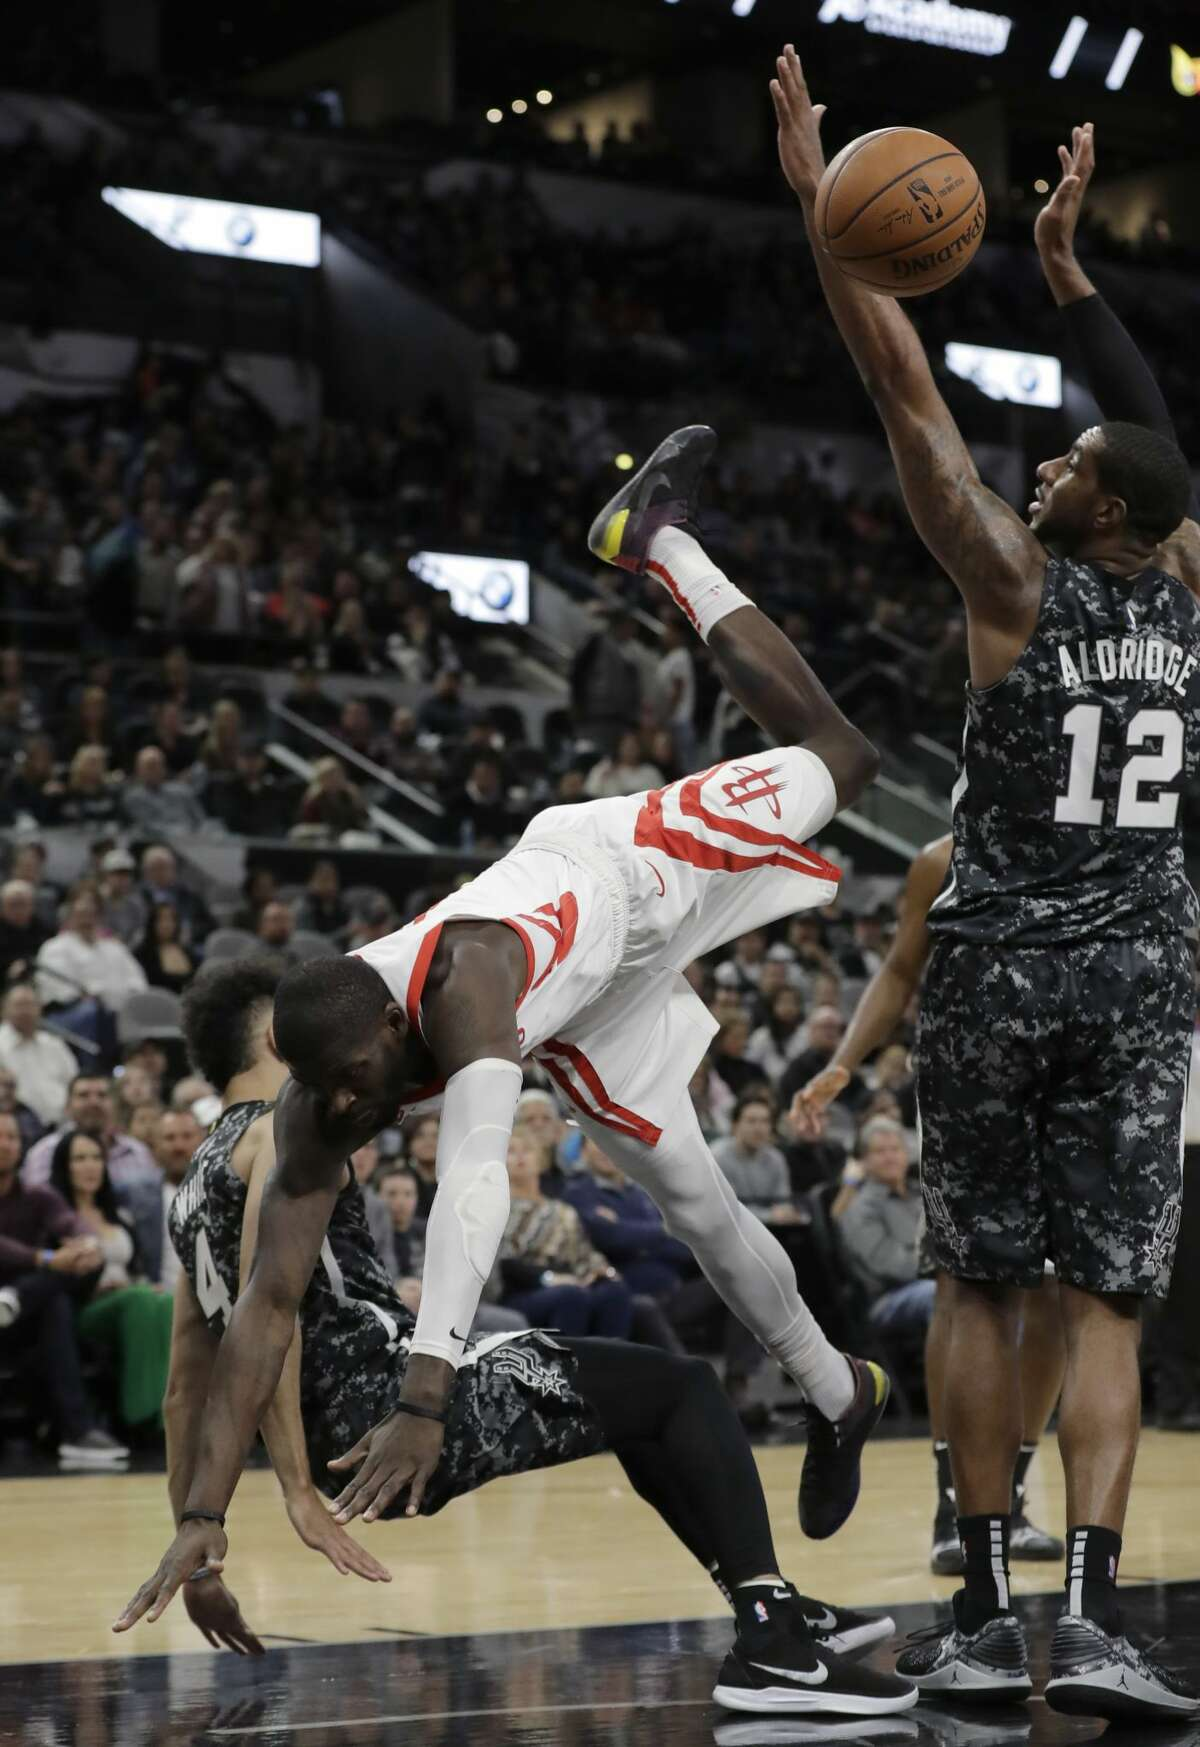 Houston Rockets forward James Ennis III, center, is upended as he tries to shoot over San Antonio Spurs guard Derrick White (4) during the first half of an NBA basketball game, Saturday, Nov. 10, 2018, in San Antonio. (AP Photo/Eric Gay)